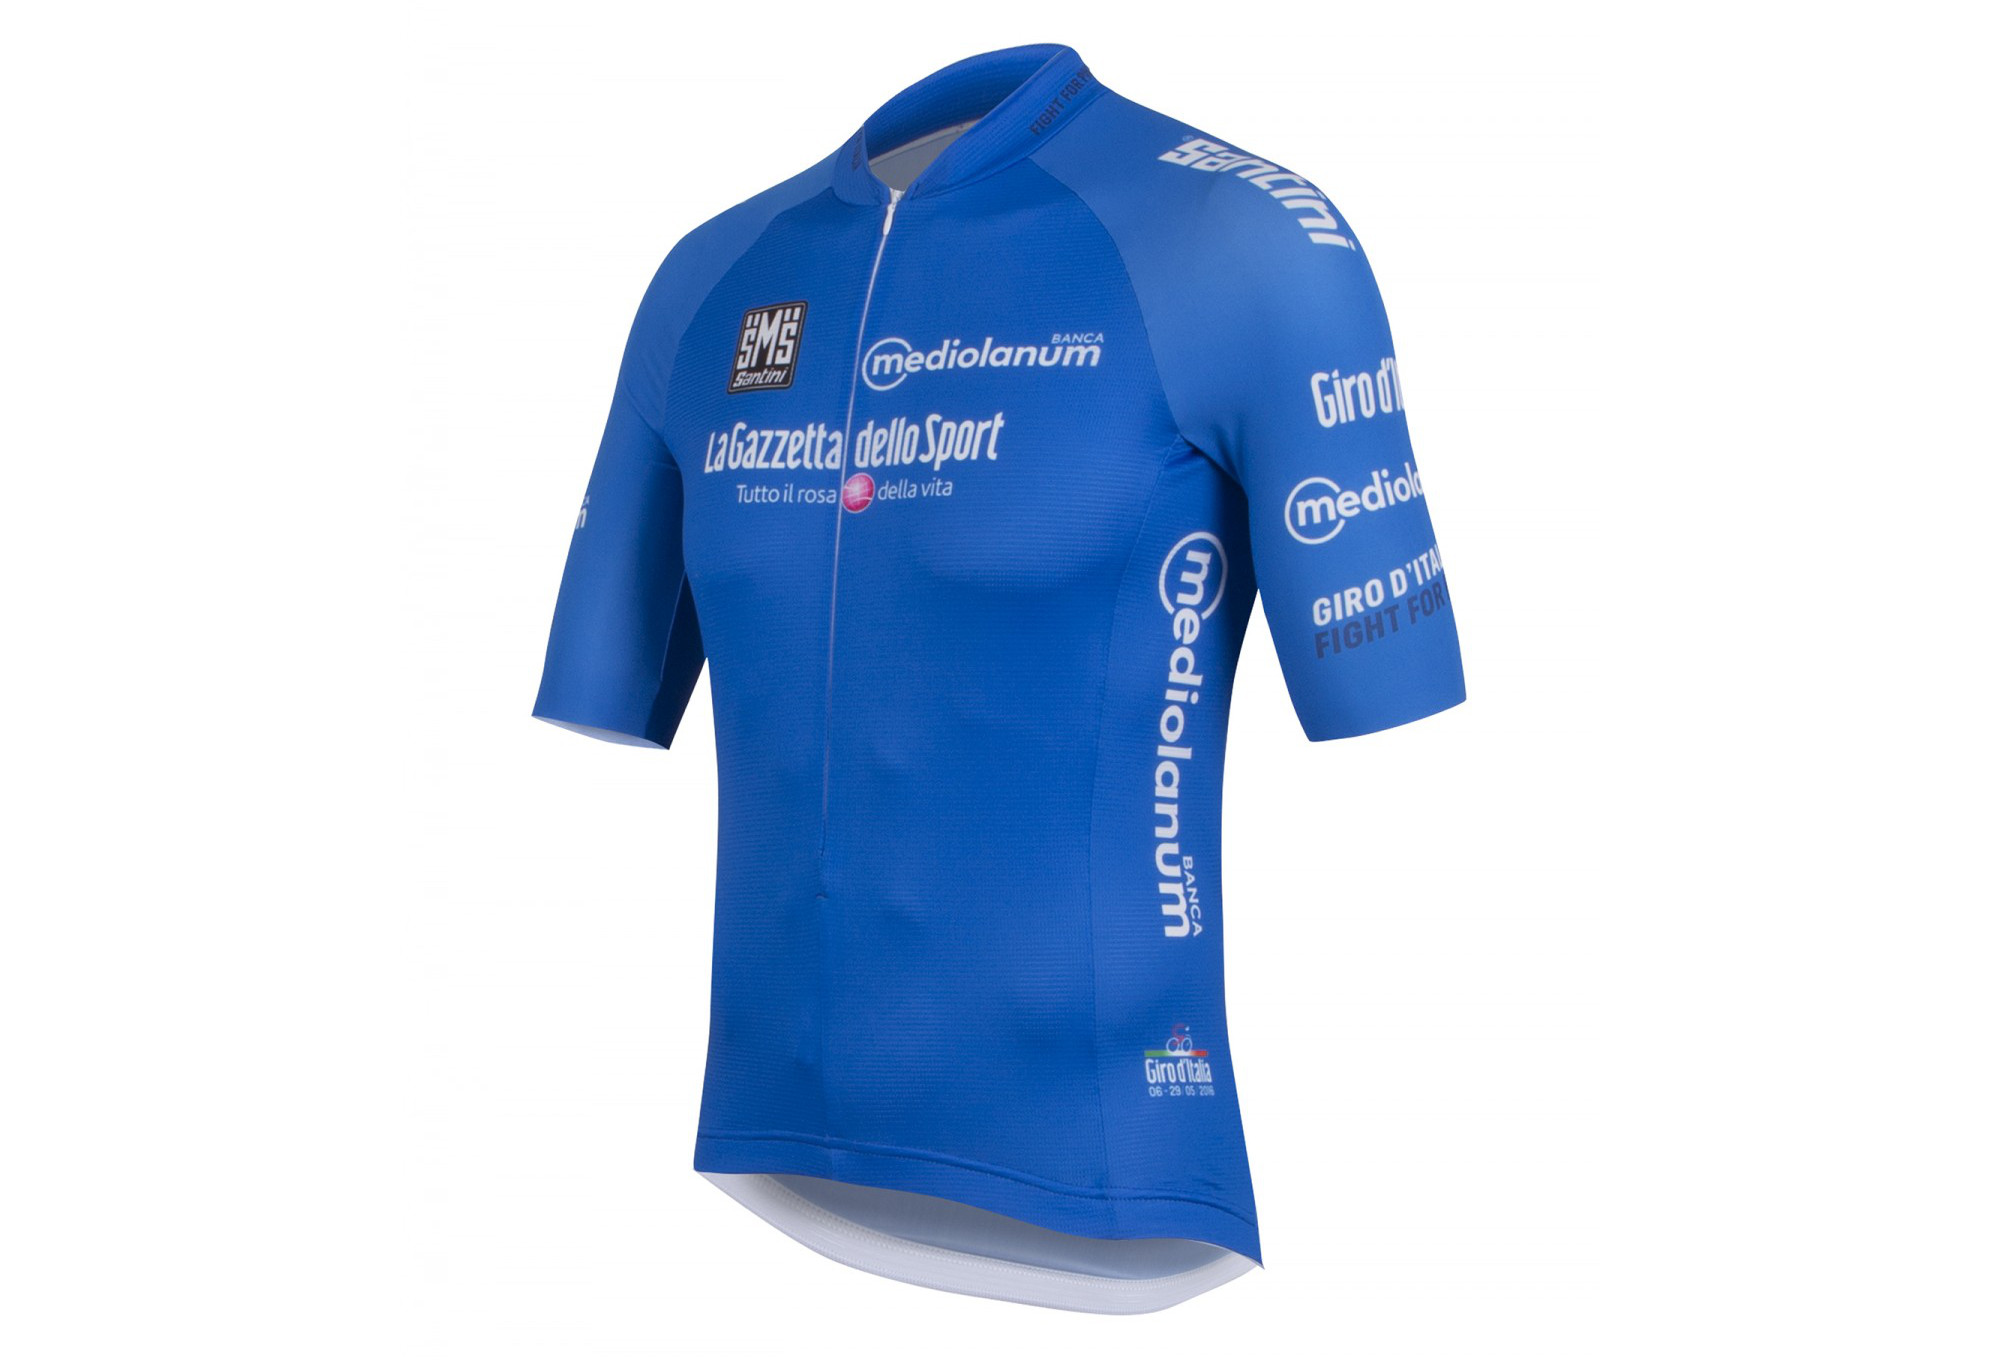 8fb817cbe3 SANTINI Short Sleeve Jersey GIRO D ITALIA 2016 Mountain Blue ...